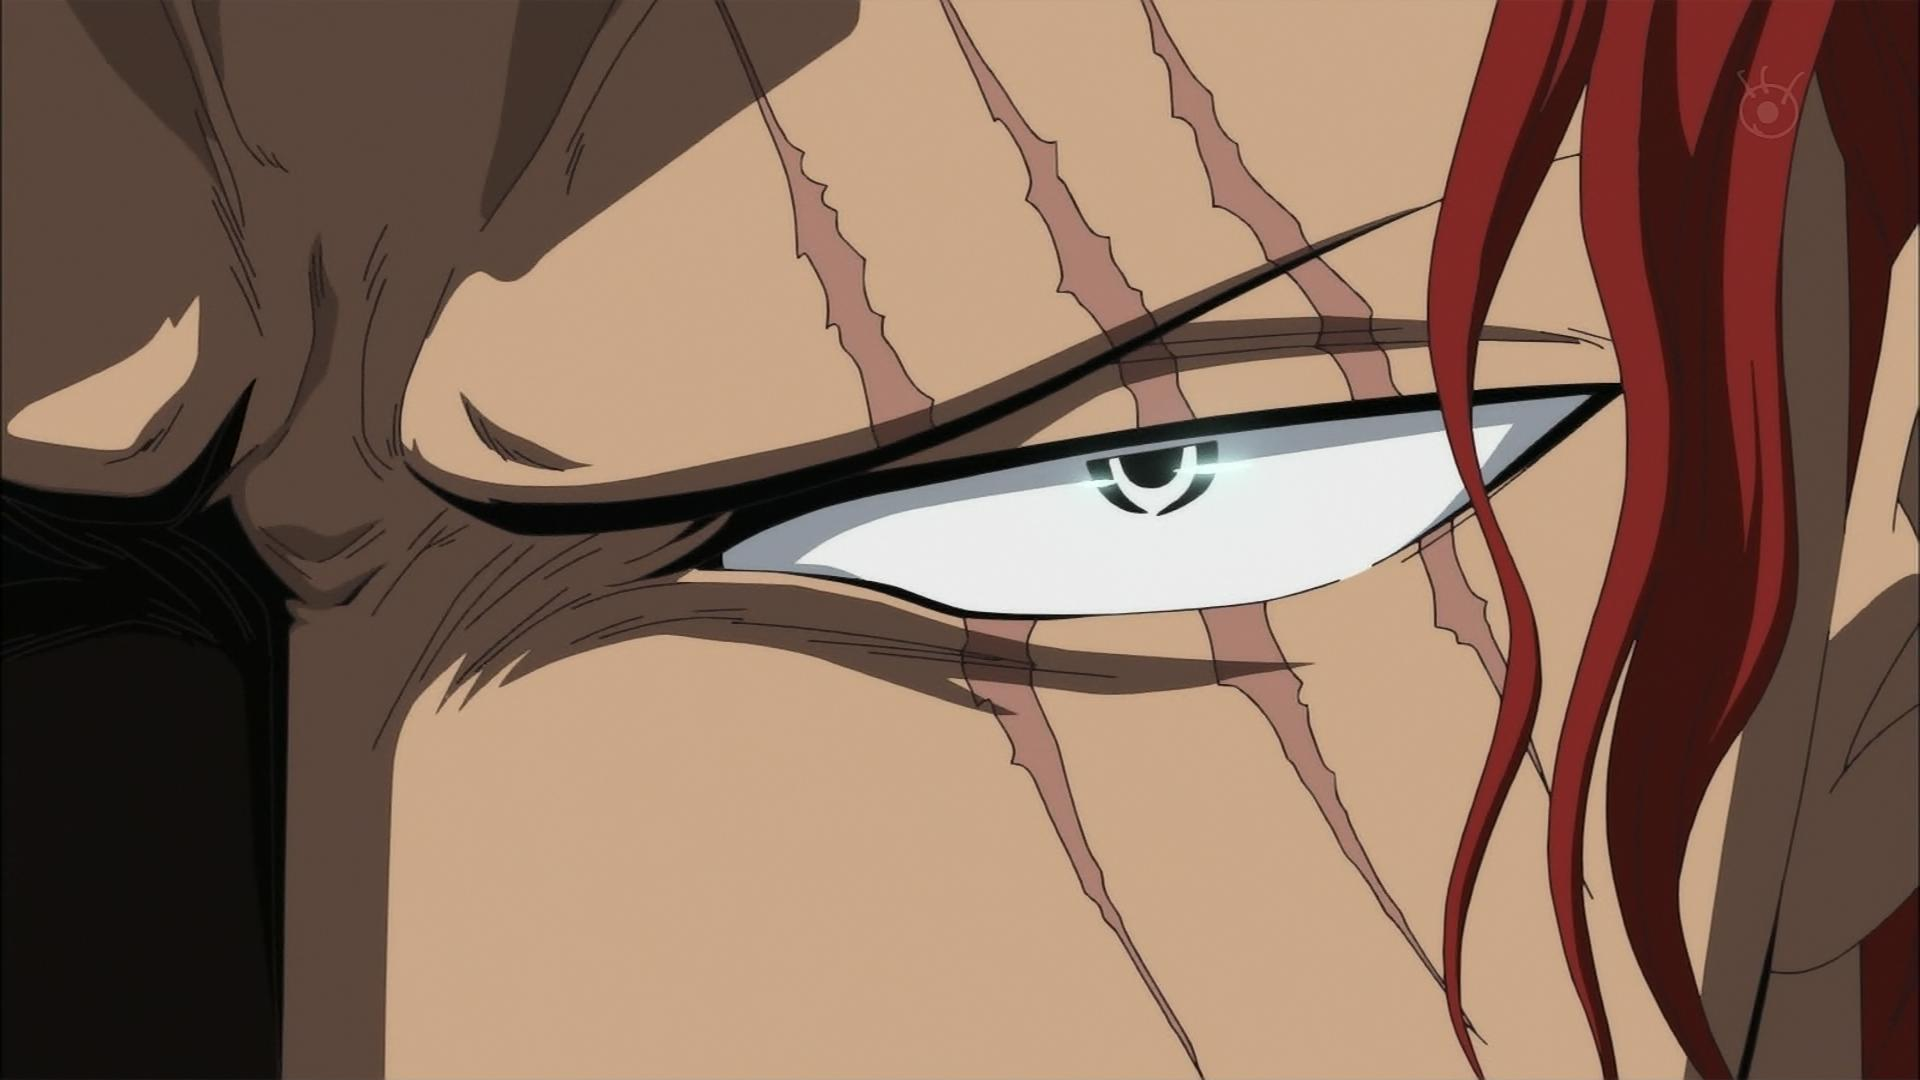 shanks podr a ser un personaje jugable de one piece pirate warriors